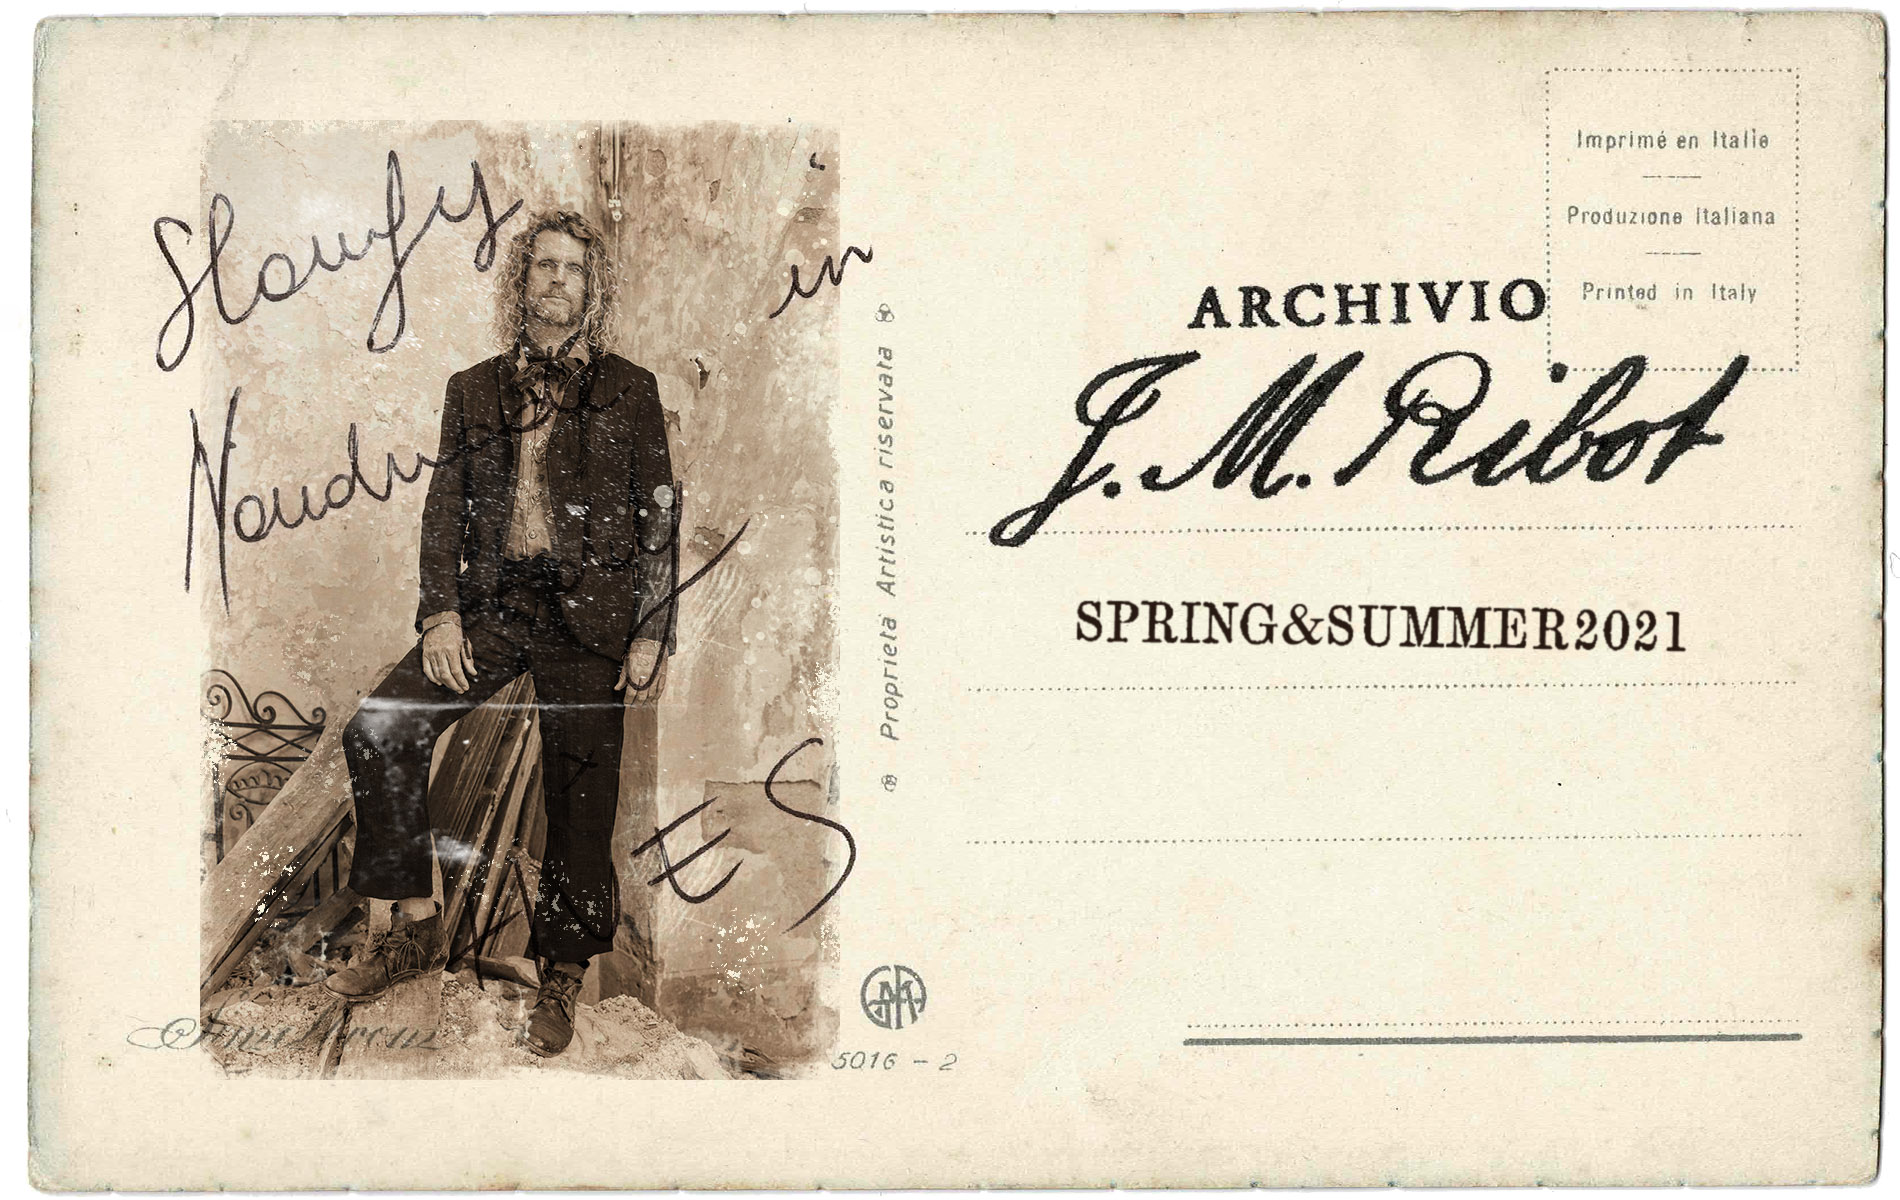 ARCHIVIO J.M.Ribot 2021 SPRING SUMMER START!!!